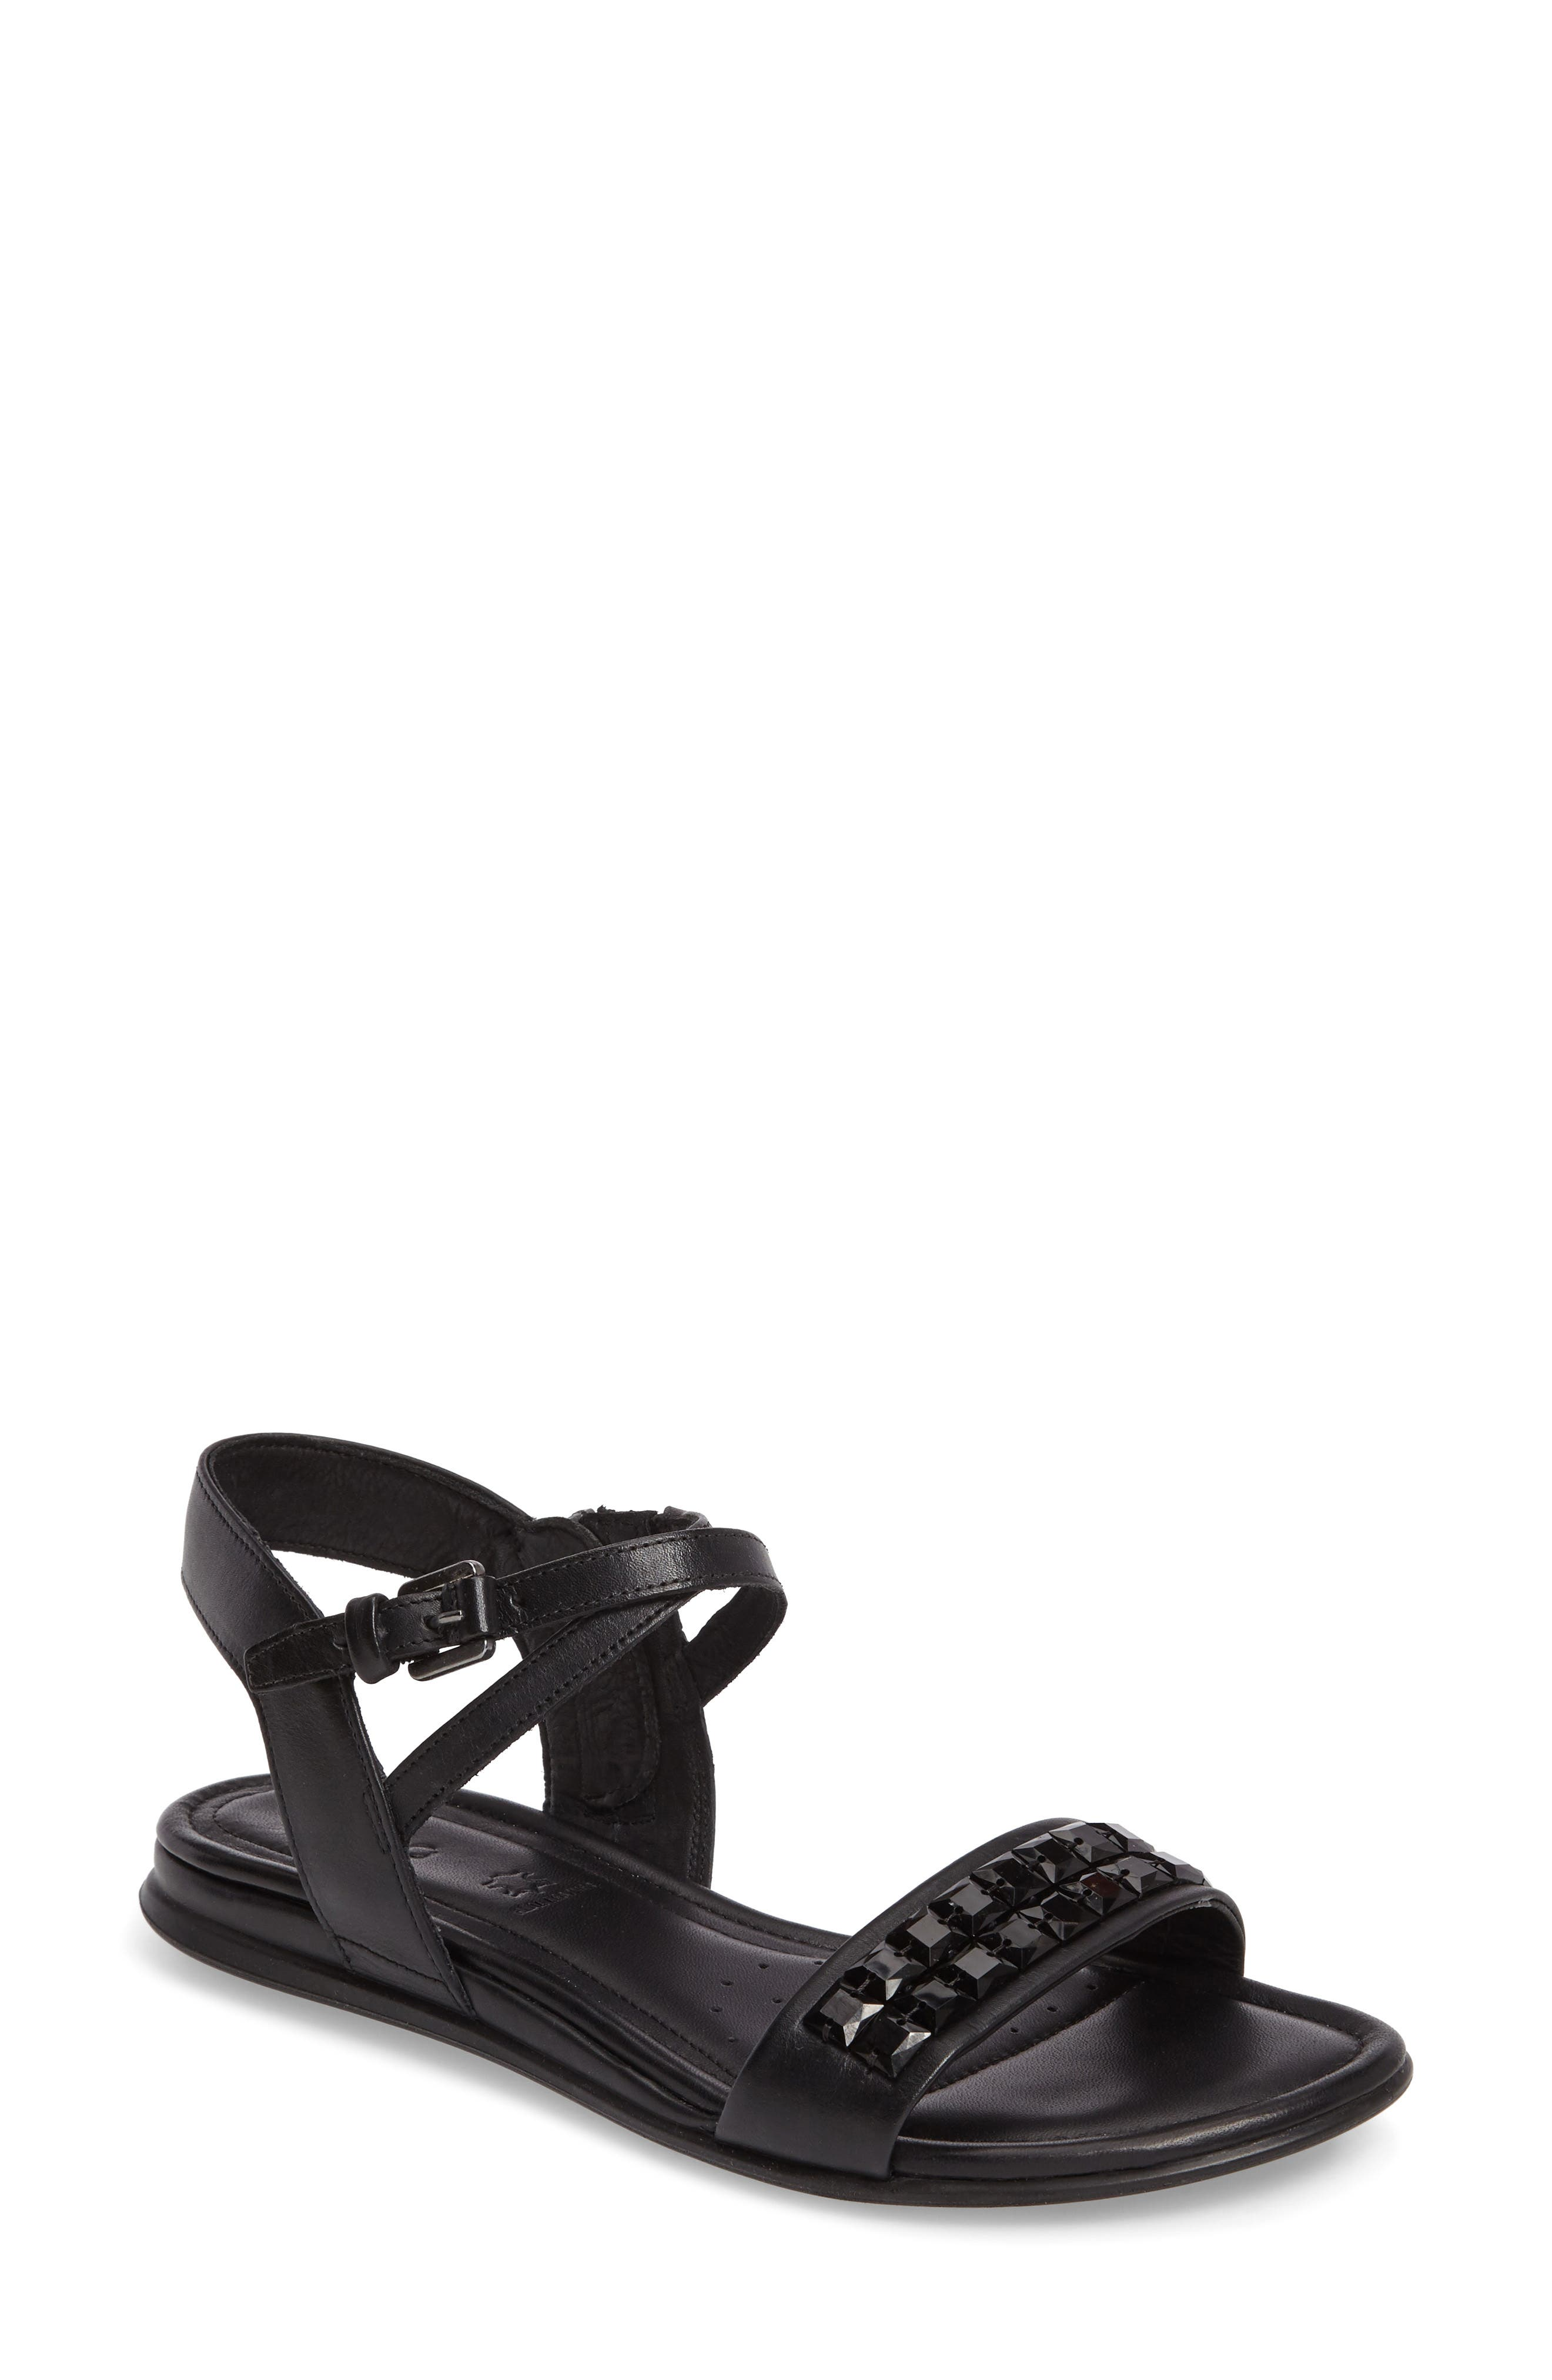 ecco touch sandal